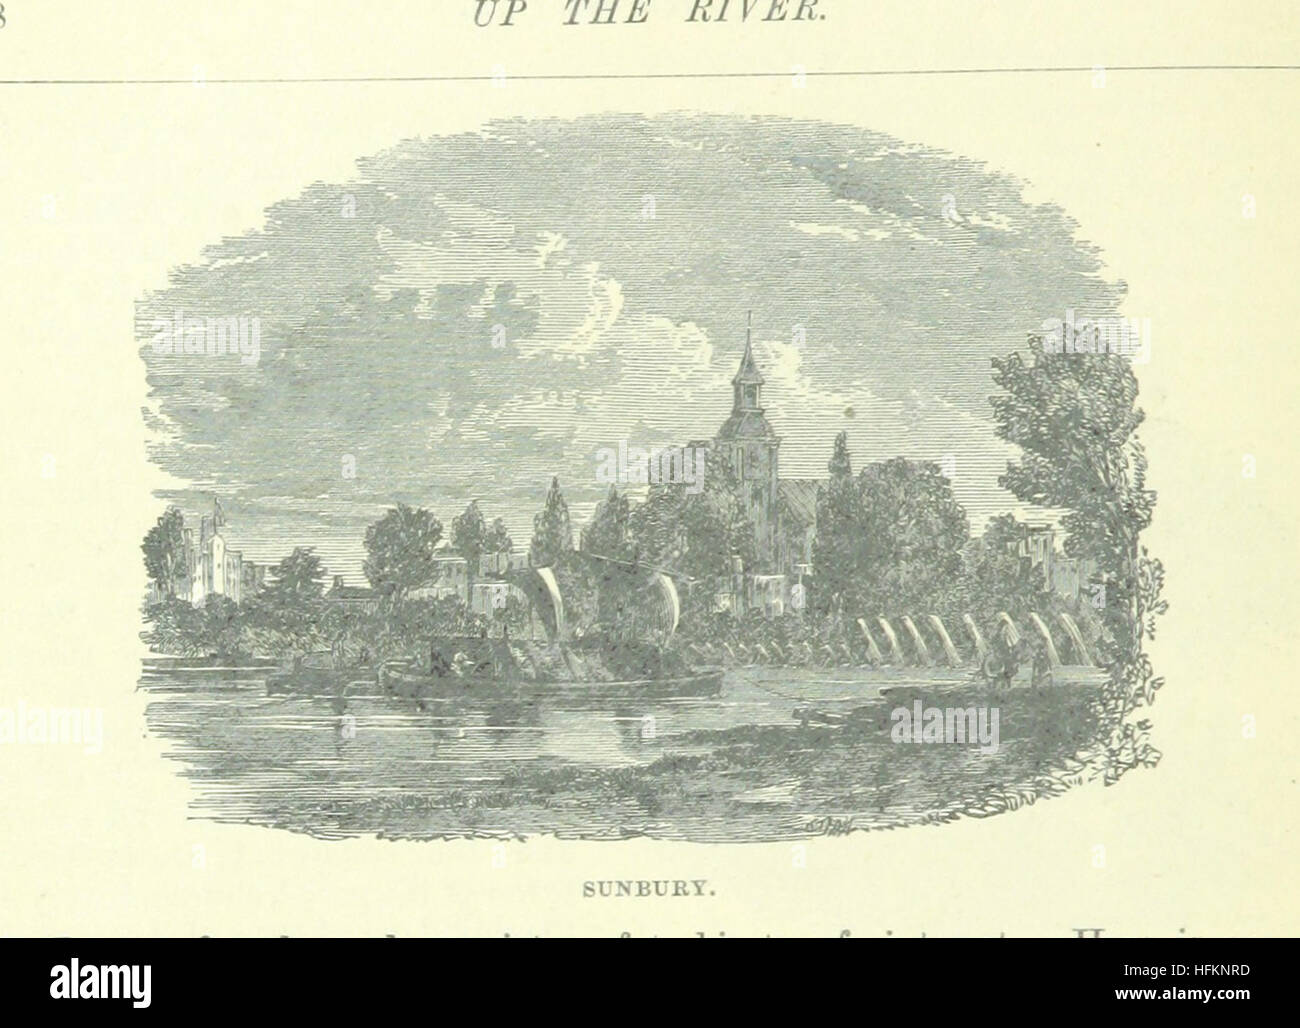 Image taken from page 98 of 'Up the River from Westminster to Windsor and Oxford; a descriptive panorama of - Stock Image